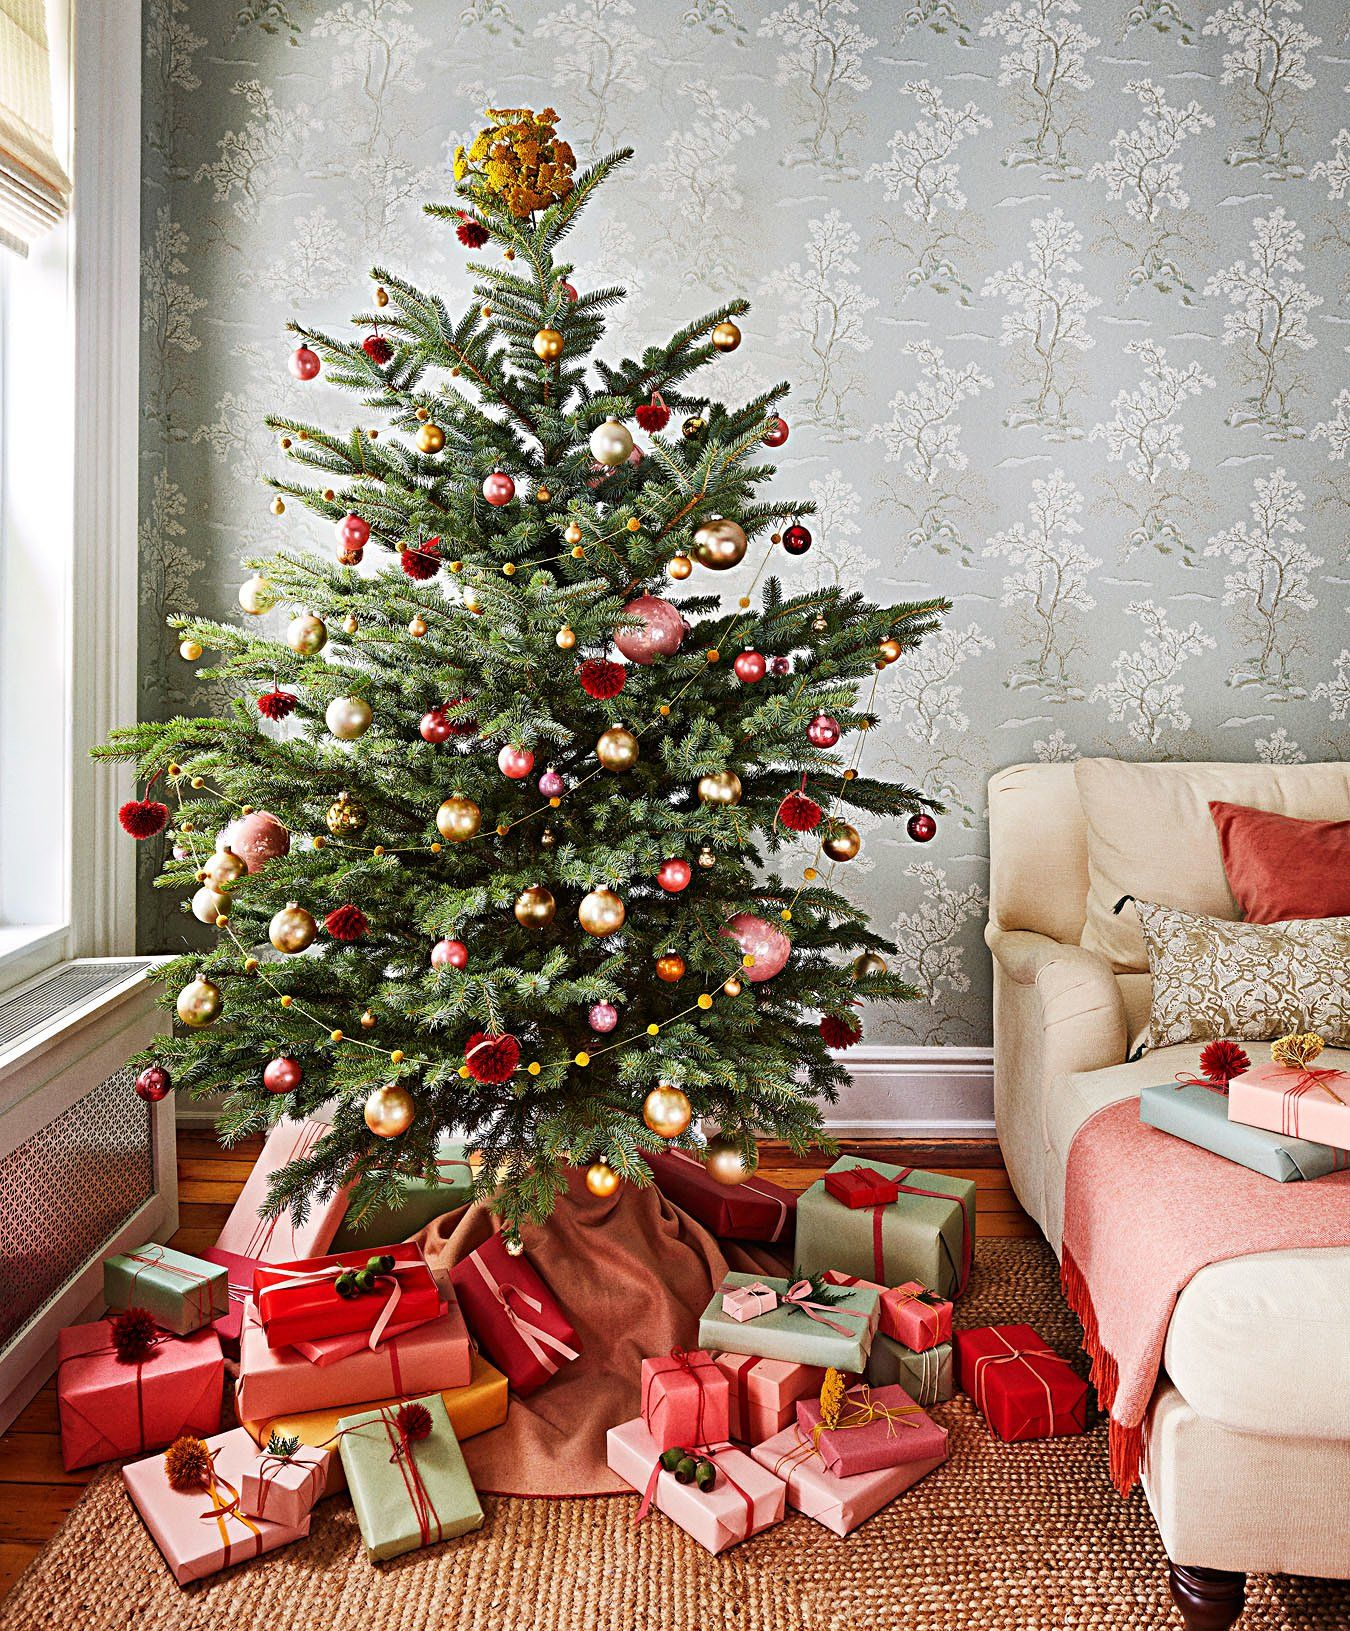 26 Of Our Most Creative Christmas Tree Decorating Ideas Christmas Tree Home Depot Creative Christmas Trees Christmas Tree Decorations